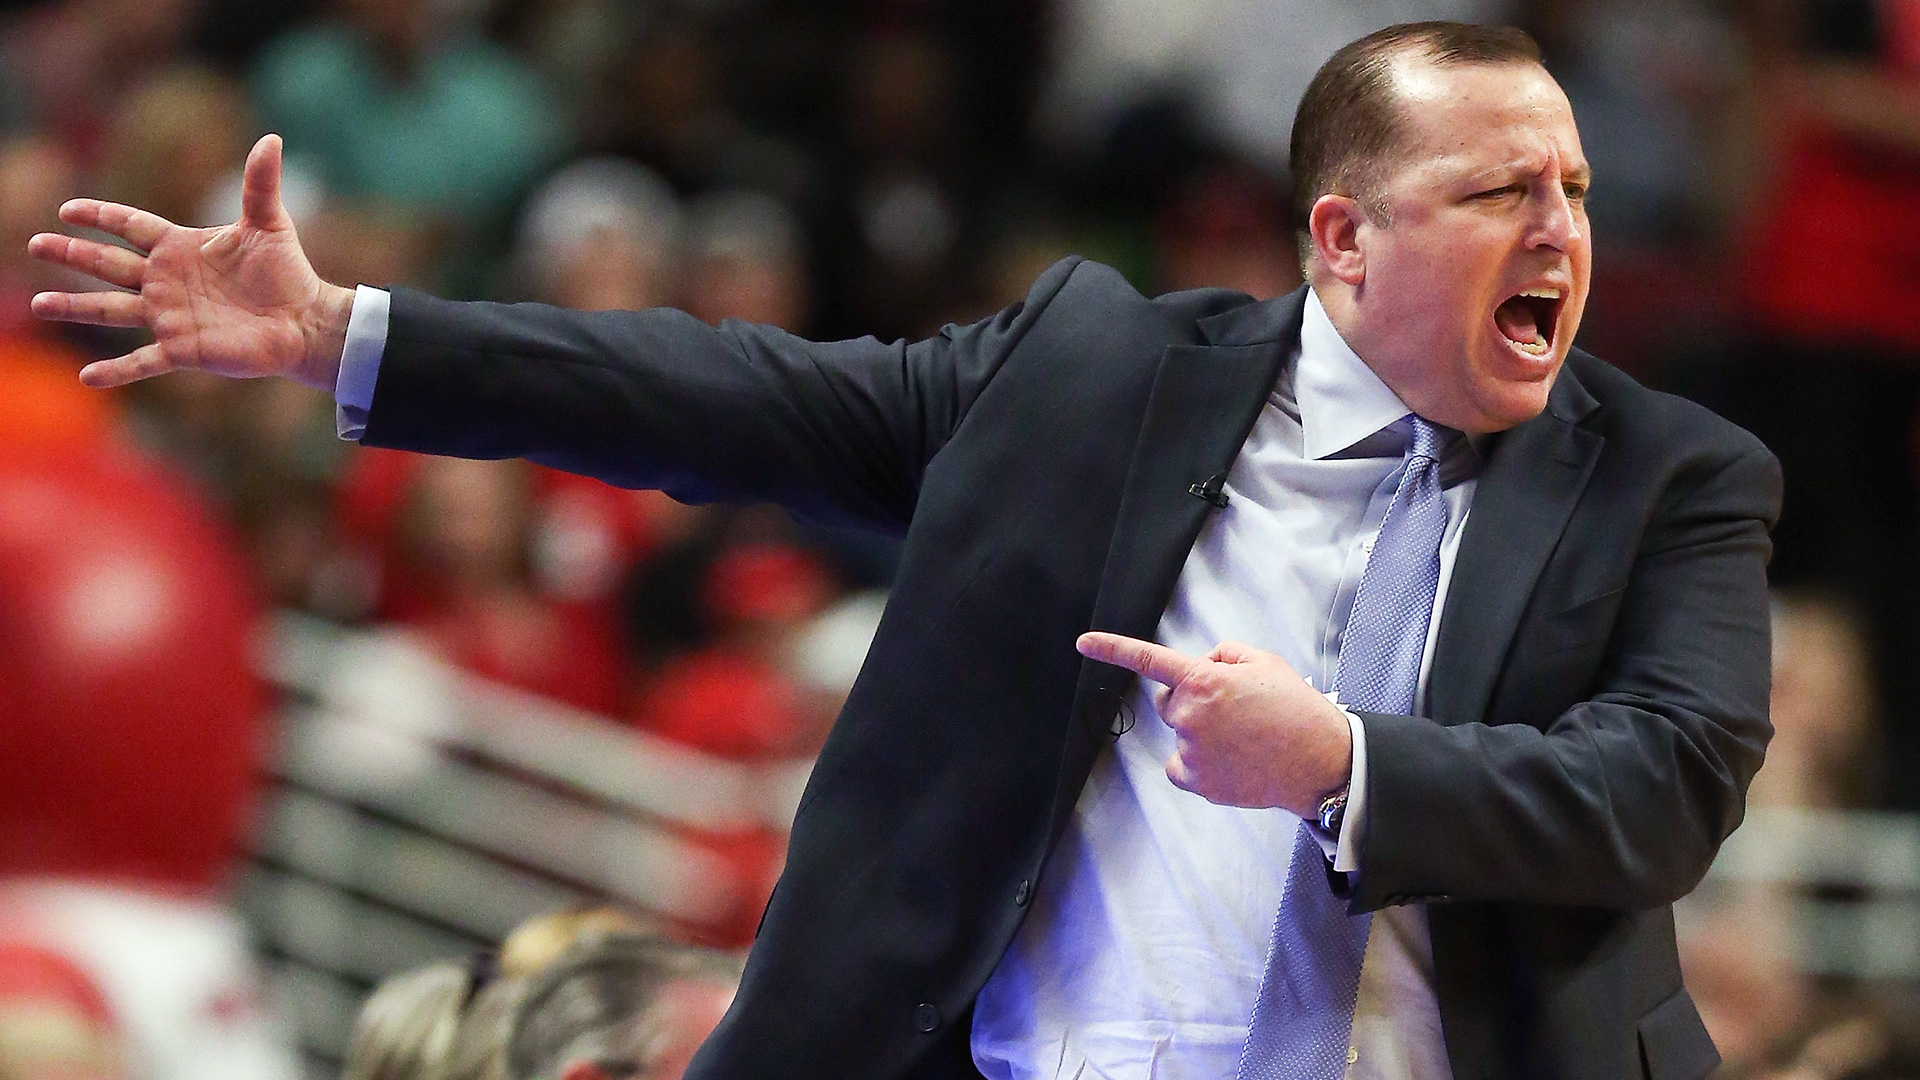 SN sources: Bulls players were told Tom Thibodeau wouldn't be back